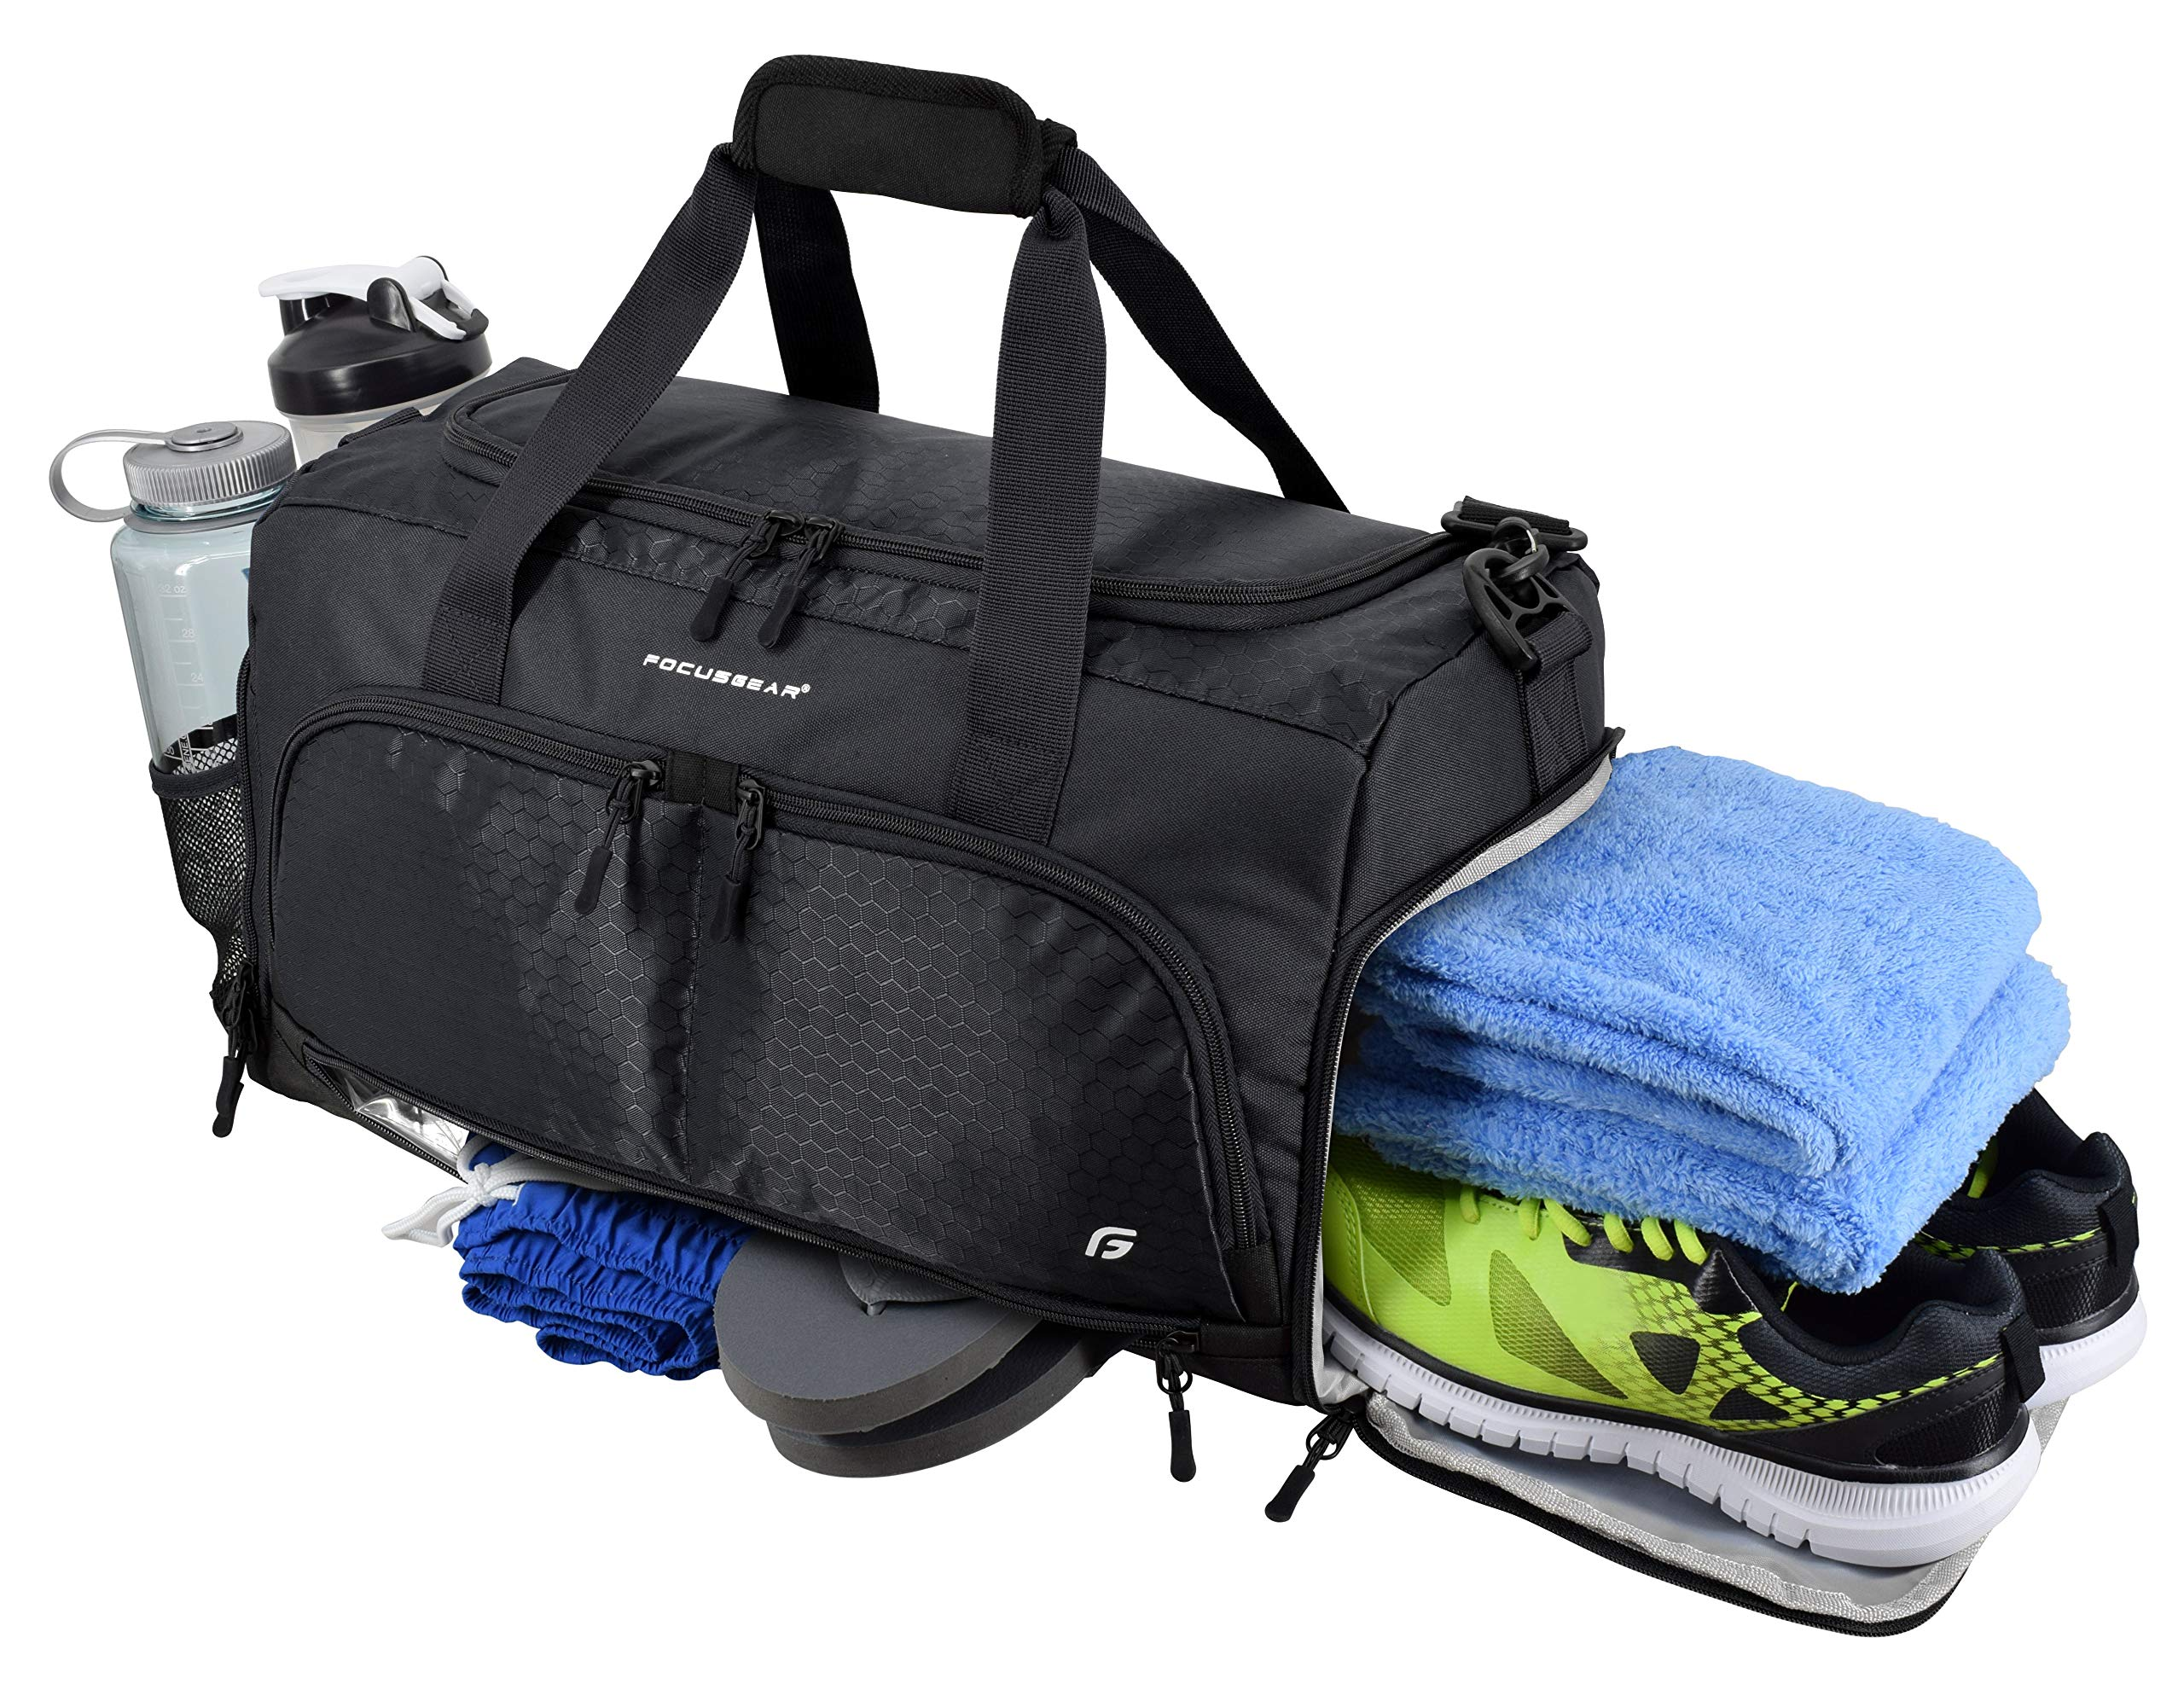 Ultimate Gym Bag 2.0: The Durable Crowdsource Designed Duffel Bag with 10 Optimal Compartments Including Water Resistant Pouch (Black, Medium (20''))